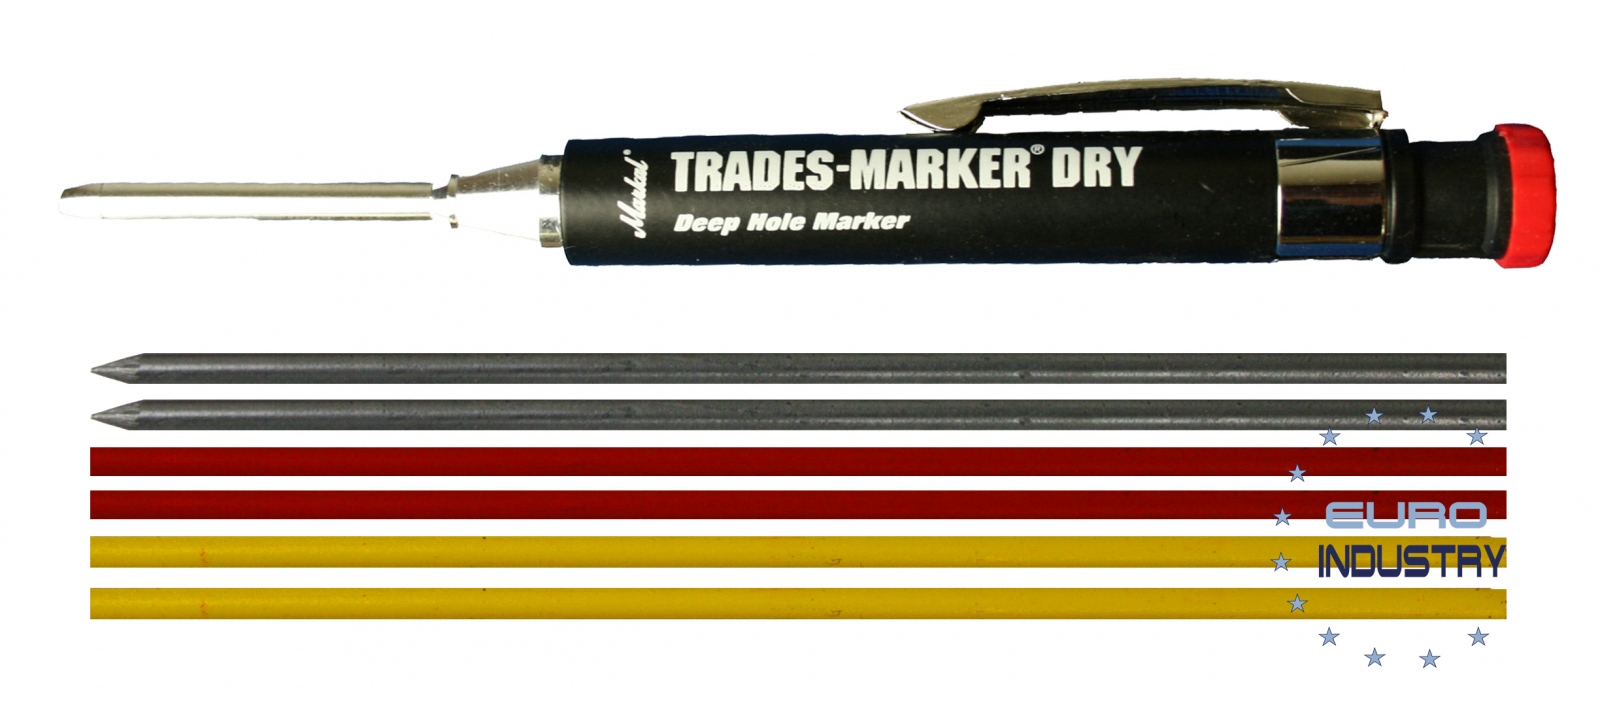 pics/Markal/E.I.S. Copyright/markal-trades-marker-dry-deep-hole-and-mix-mines-refill-pack2.jpg